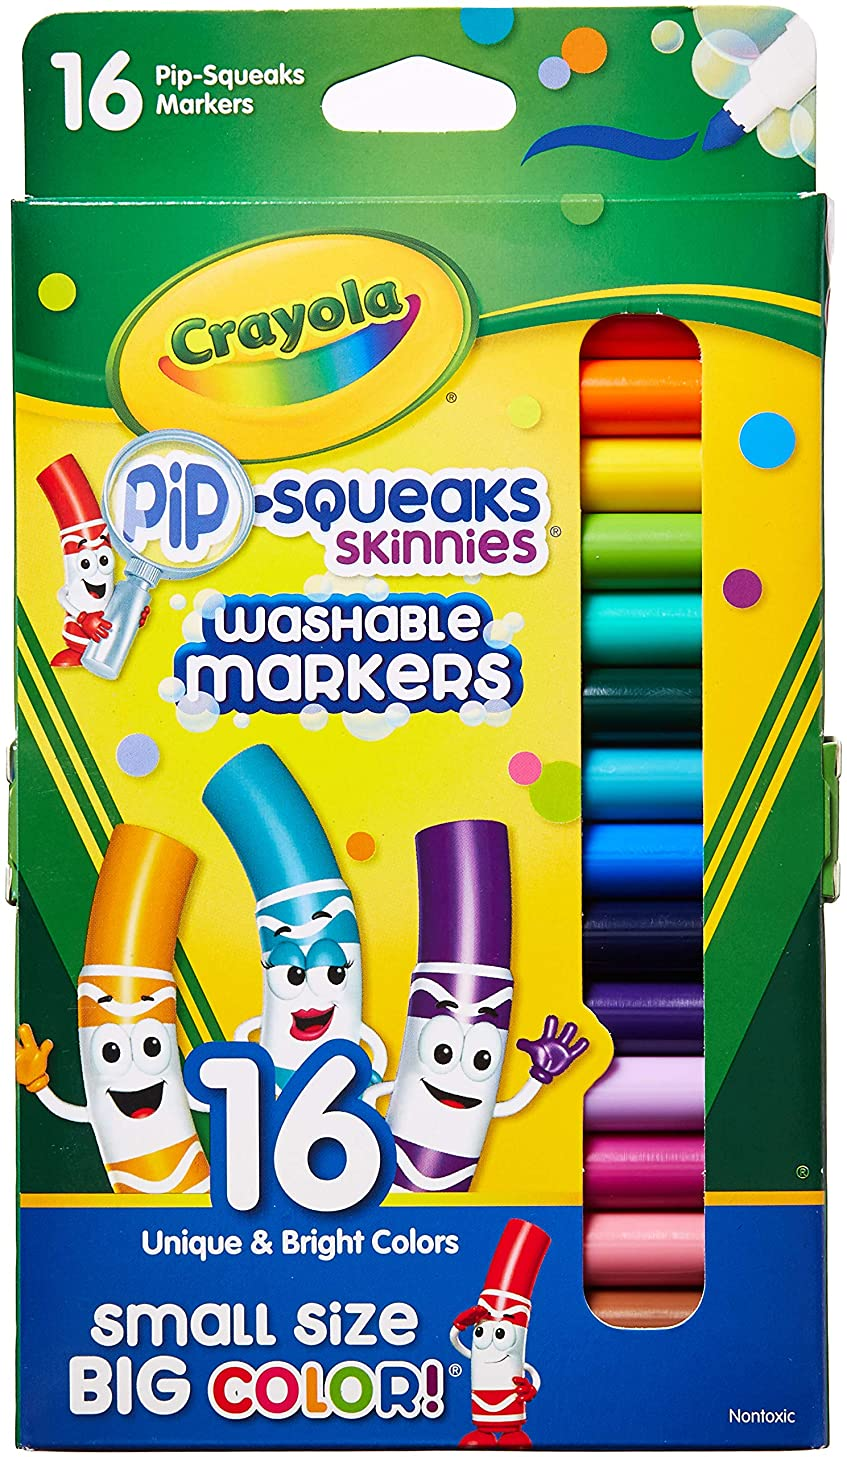 Crayola 714270010385 Pip-Squeaks Skinnies Washable Markers, Assorted Colors 16 ea (Pack of 2), 32 Count, Multicolor 32 Count